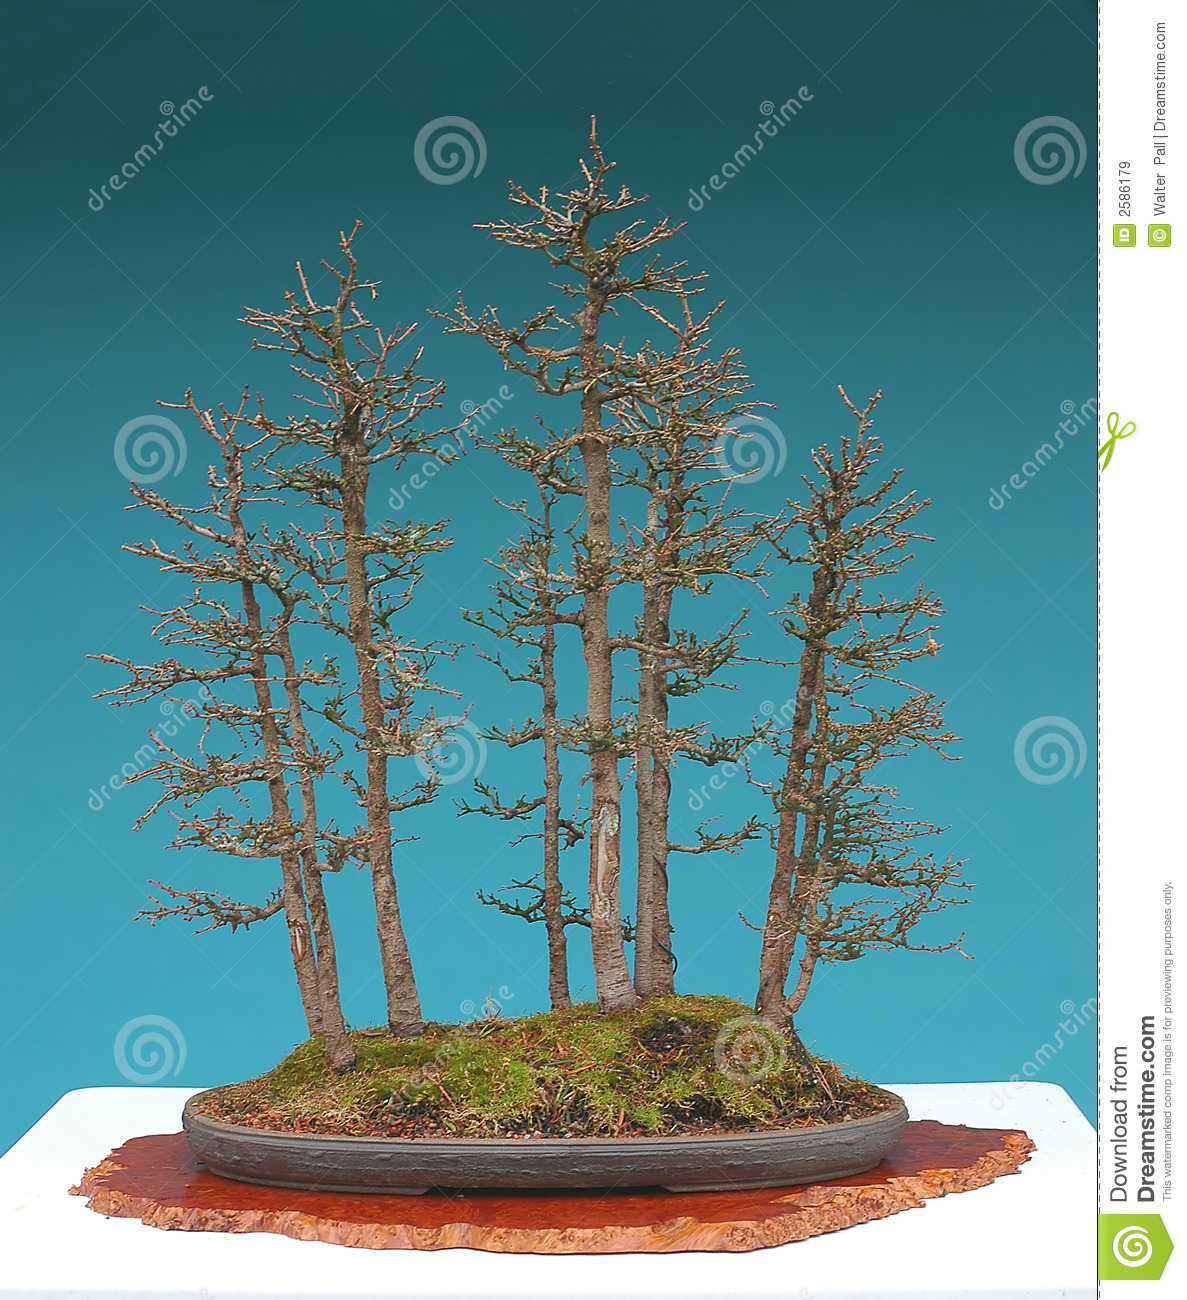 American Larch Bonsai Forest Royalty Free Stock Images.